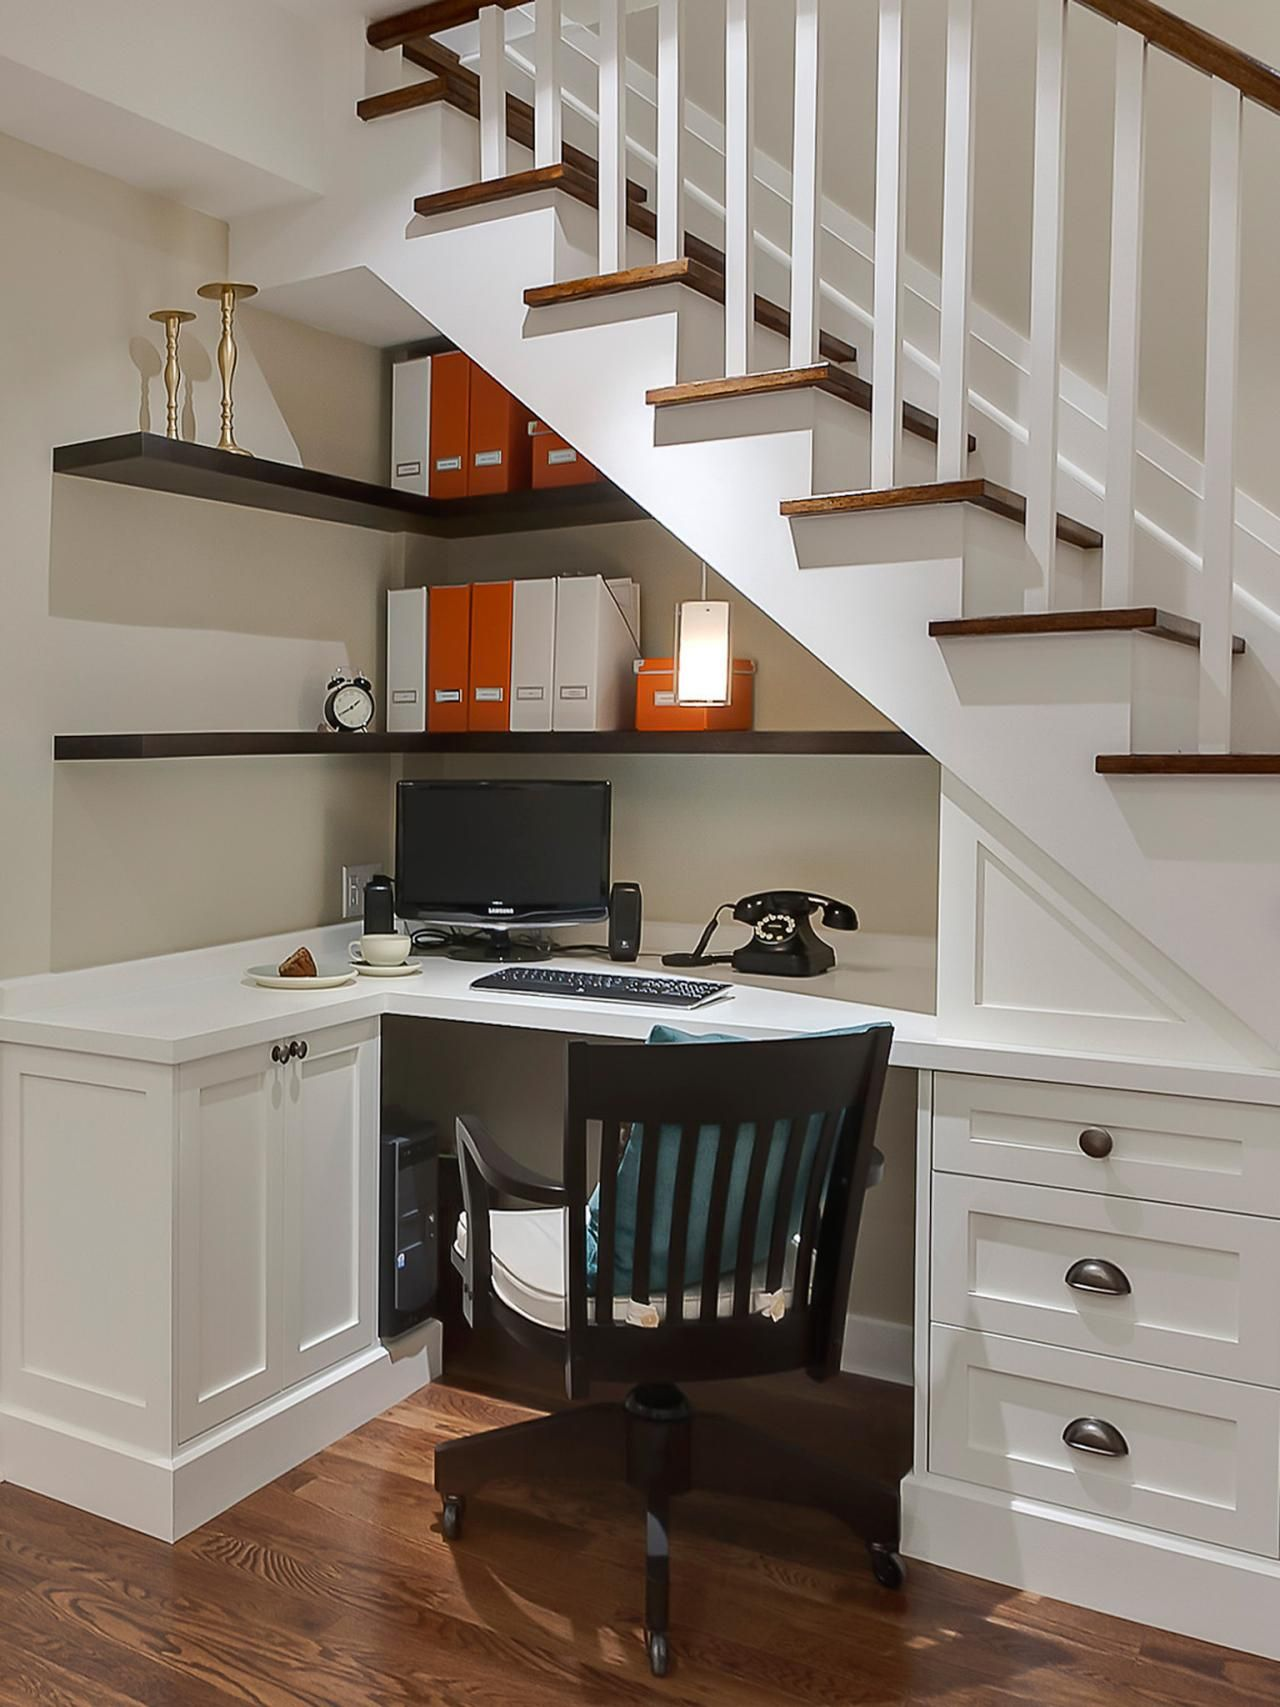 organized home office. 11 Pictures Of Organized Home Offices | Remodeling - Ideas For Basements, Theaters \u0026 More HGTV Office